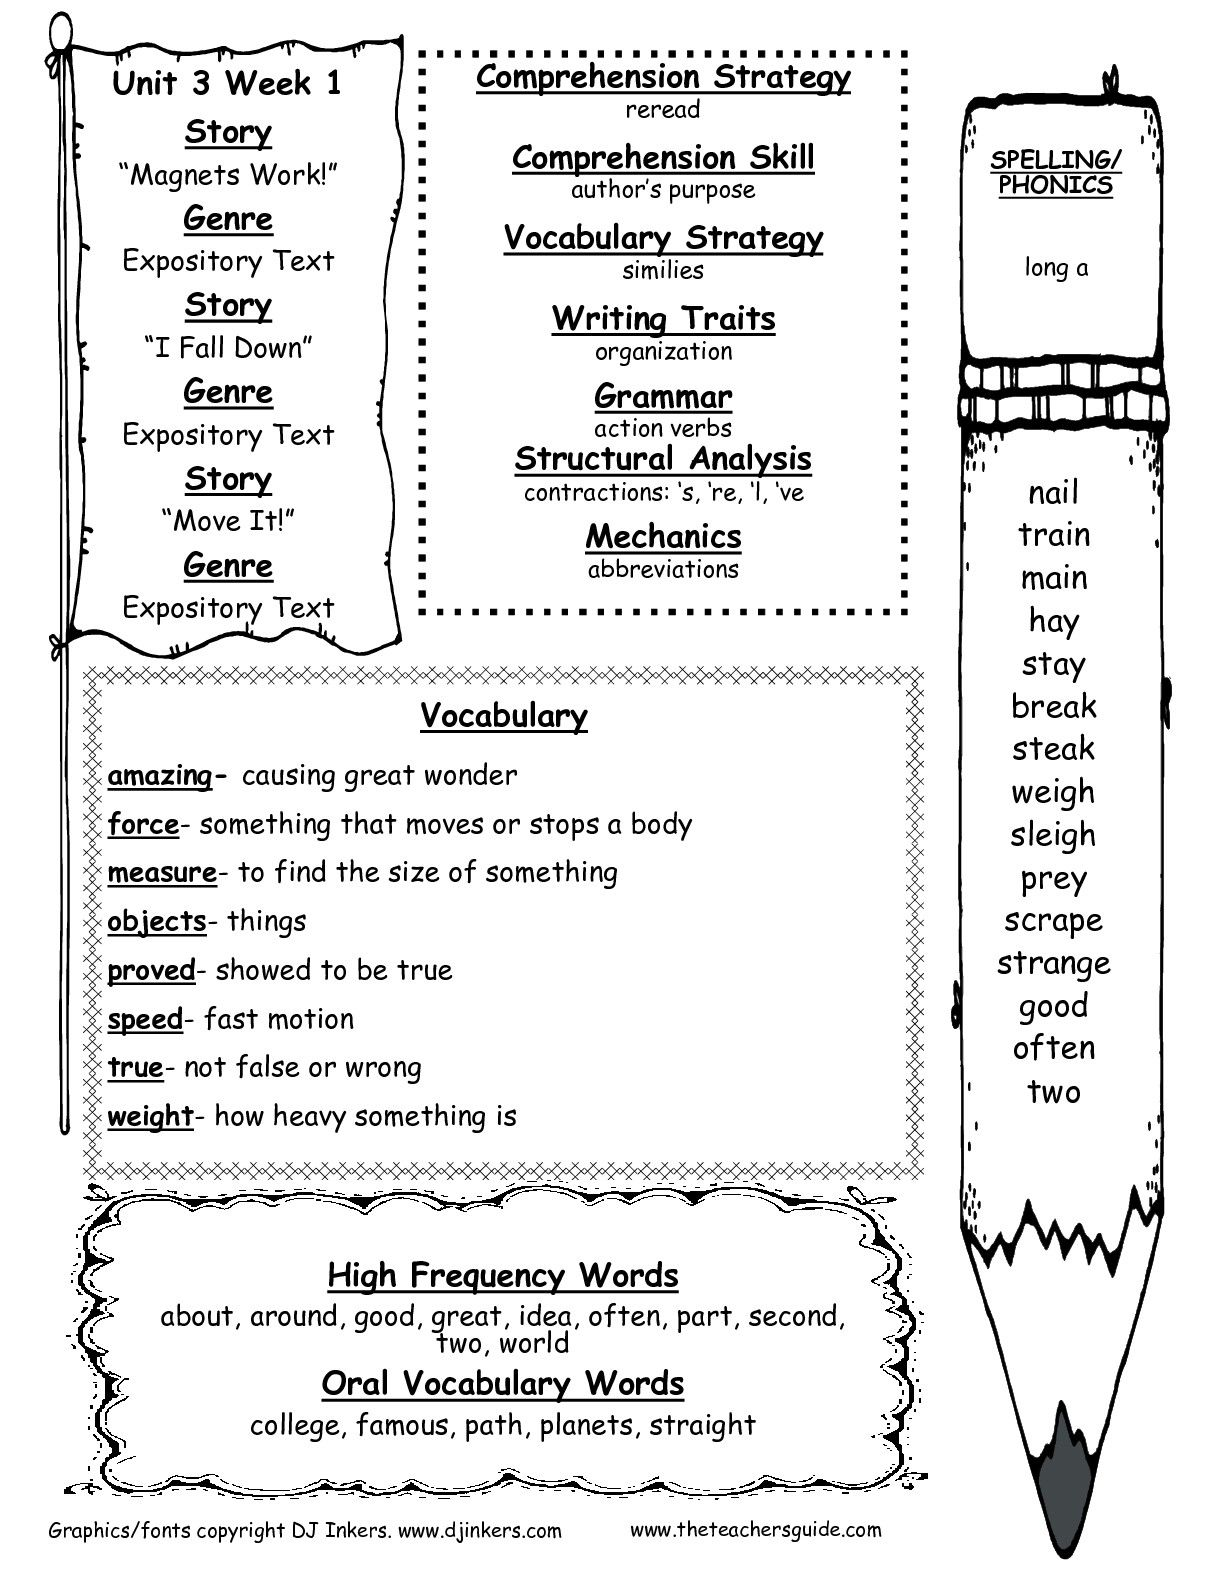 The Teacher S Guide Free Worksheets Smartboard Templates And Lesson Plans For Teachers